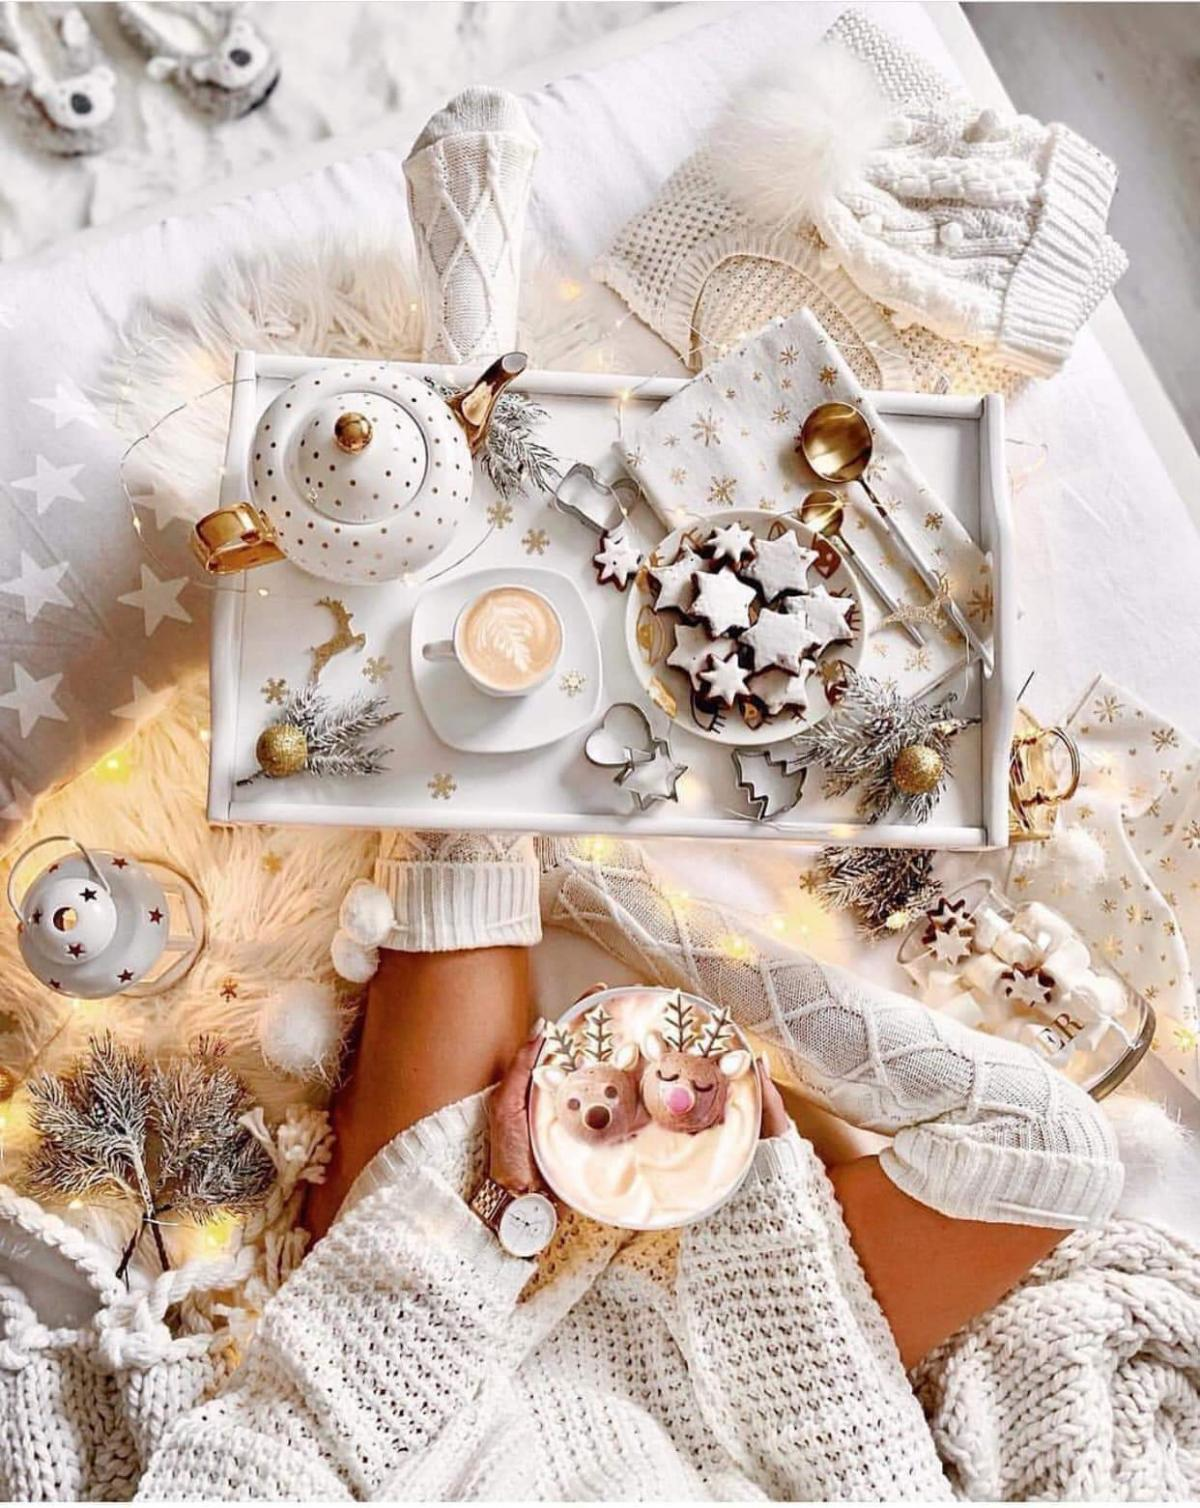 Morning coffee and Christmas sweets will fill the whole day with a wonderful mood